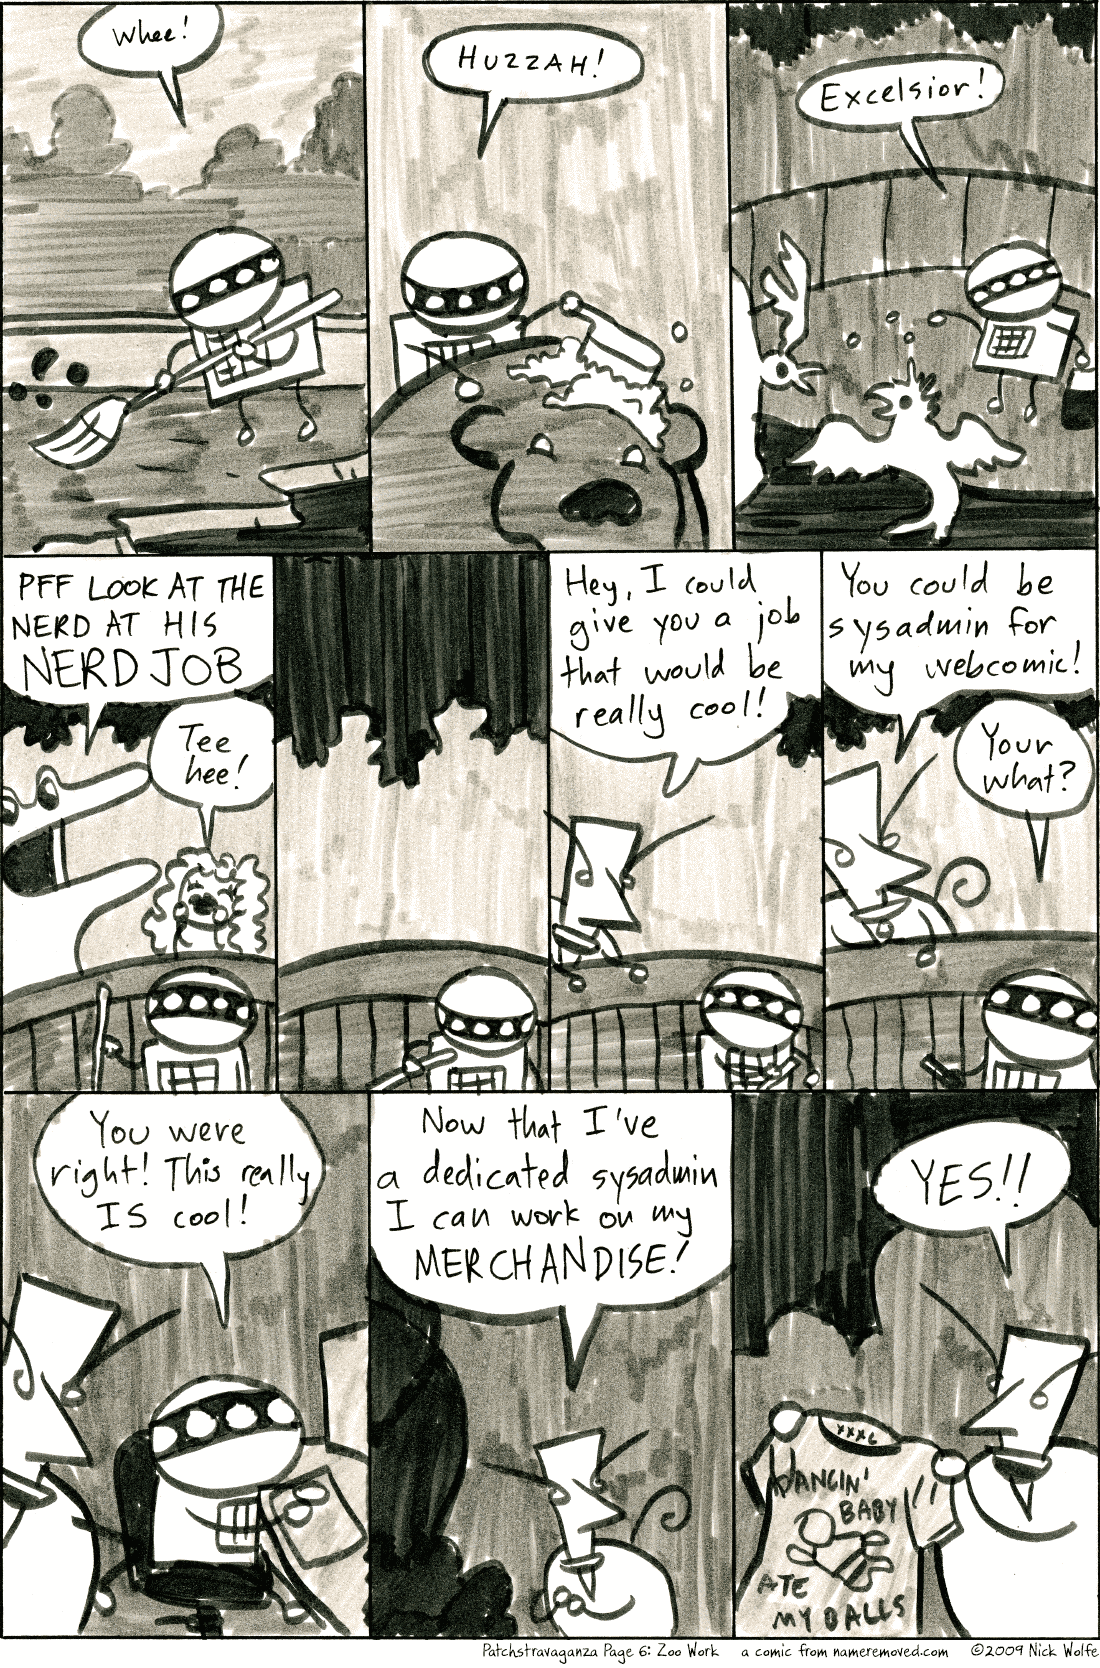 Patchstravaganza Page 6: Zoo Work